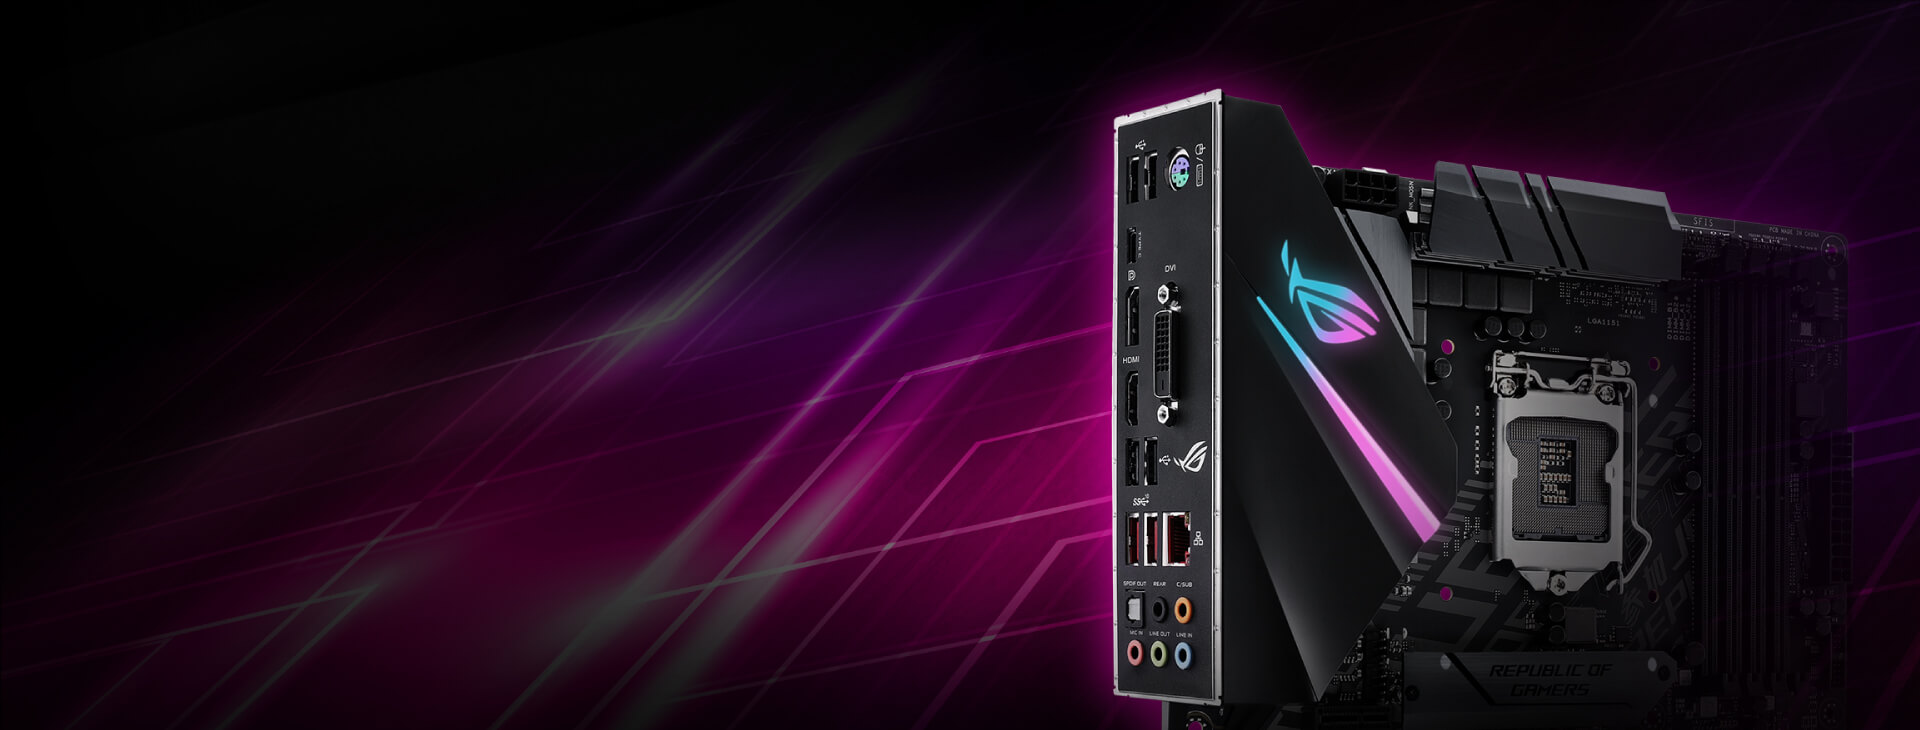 Rog Strix H370 F Gaming Motherboards Asus Usa Sharing Neutrals On The Same Phase Electrical Diy Chatroom Home Gamers Guardian